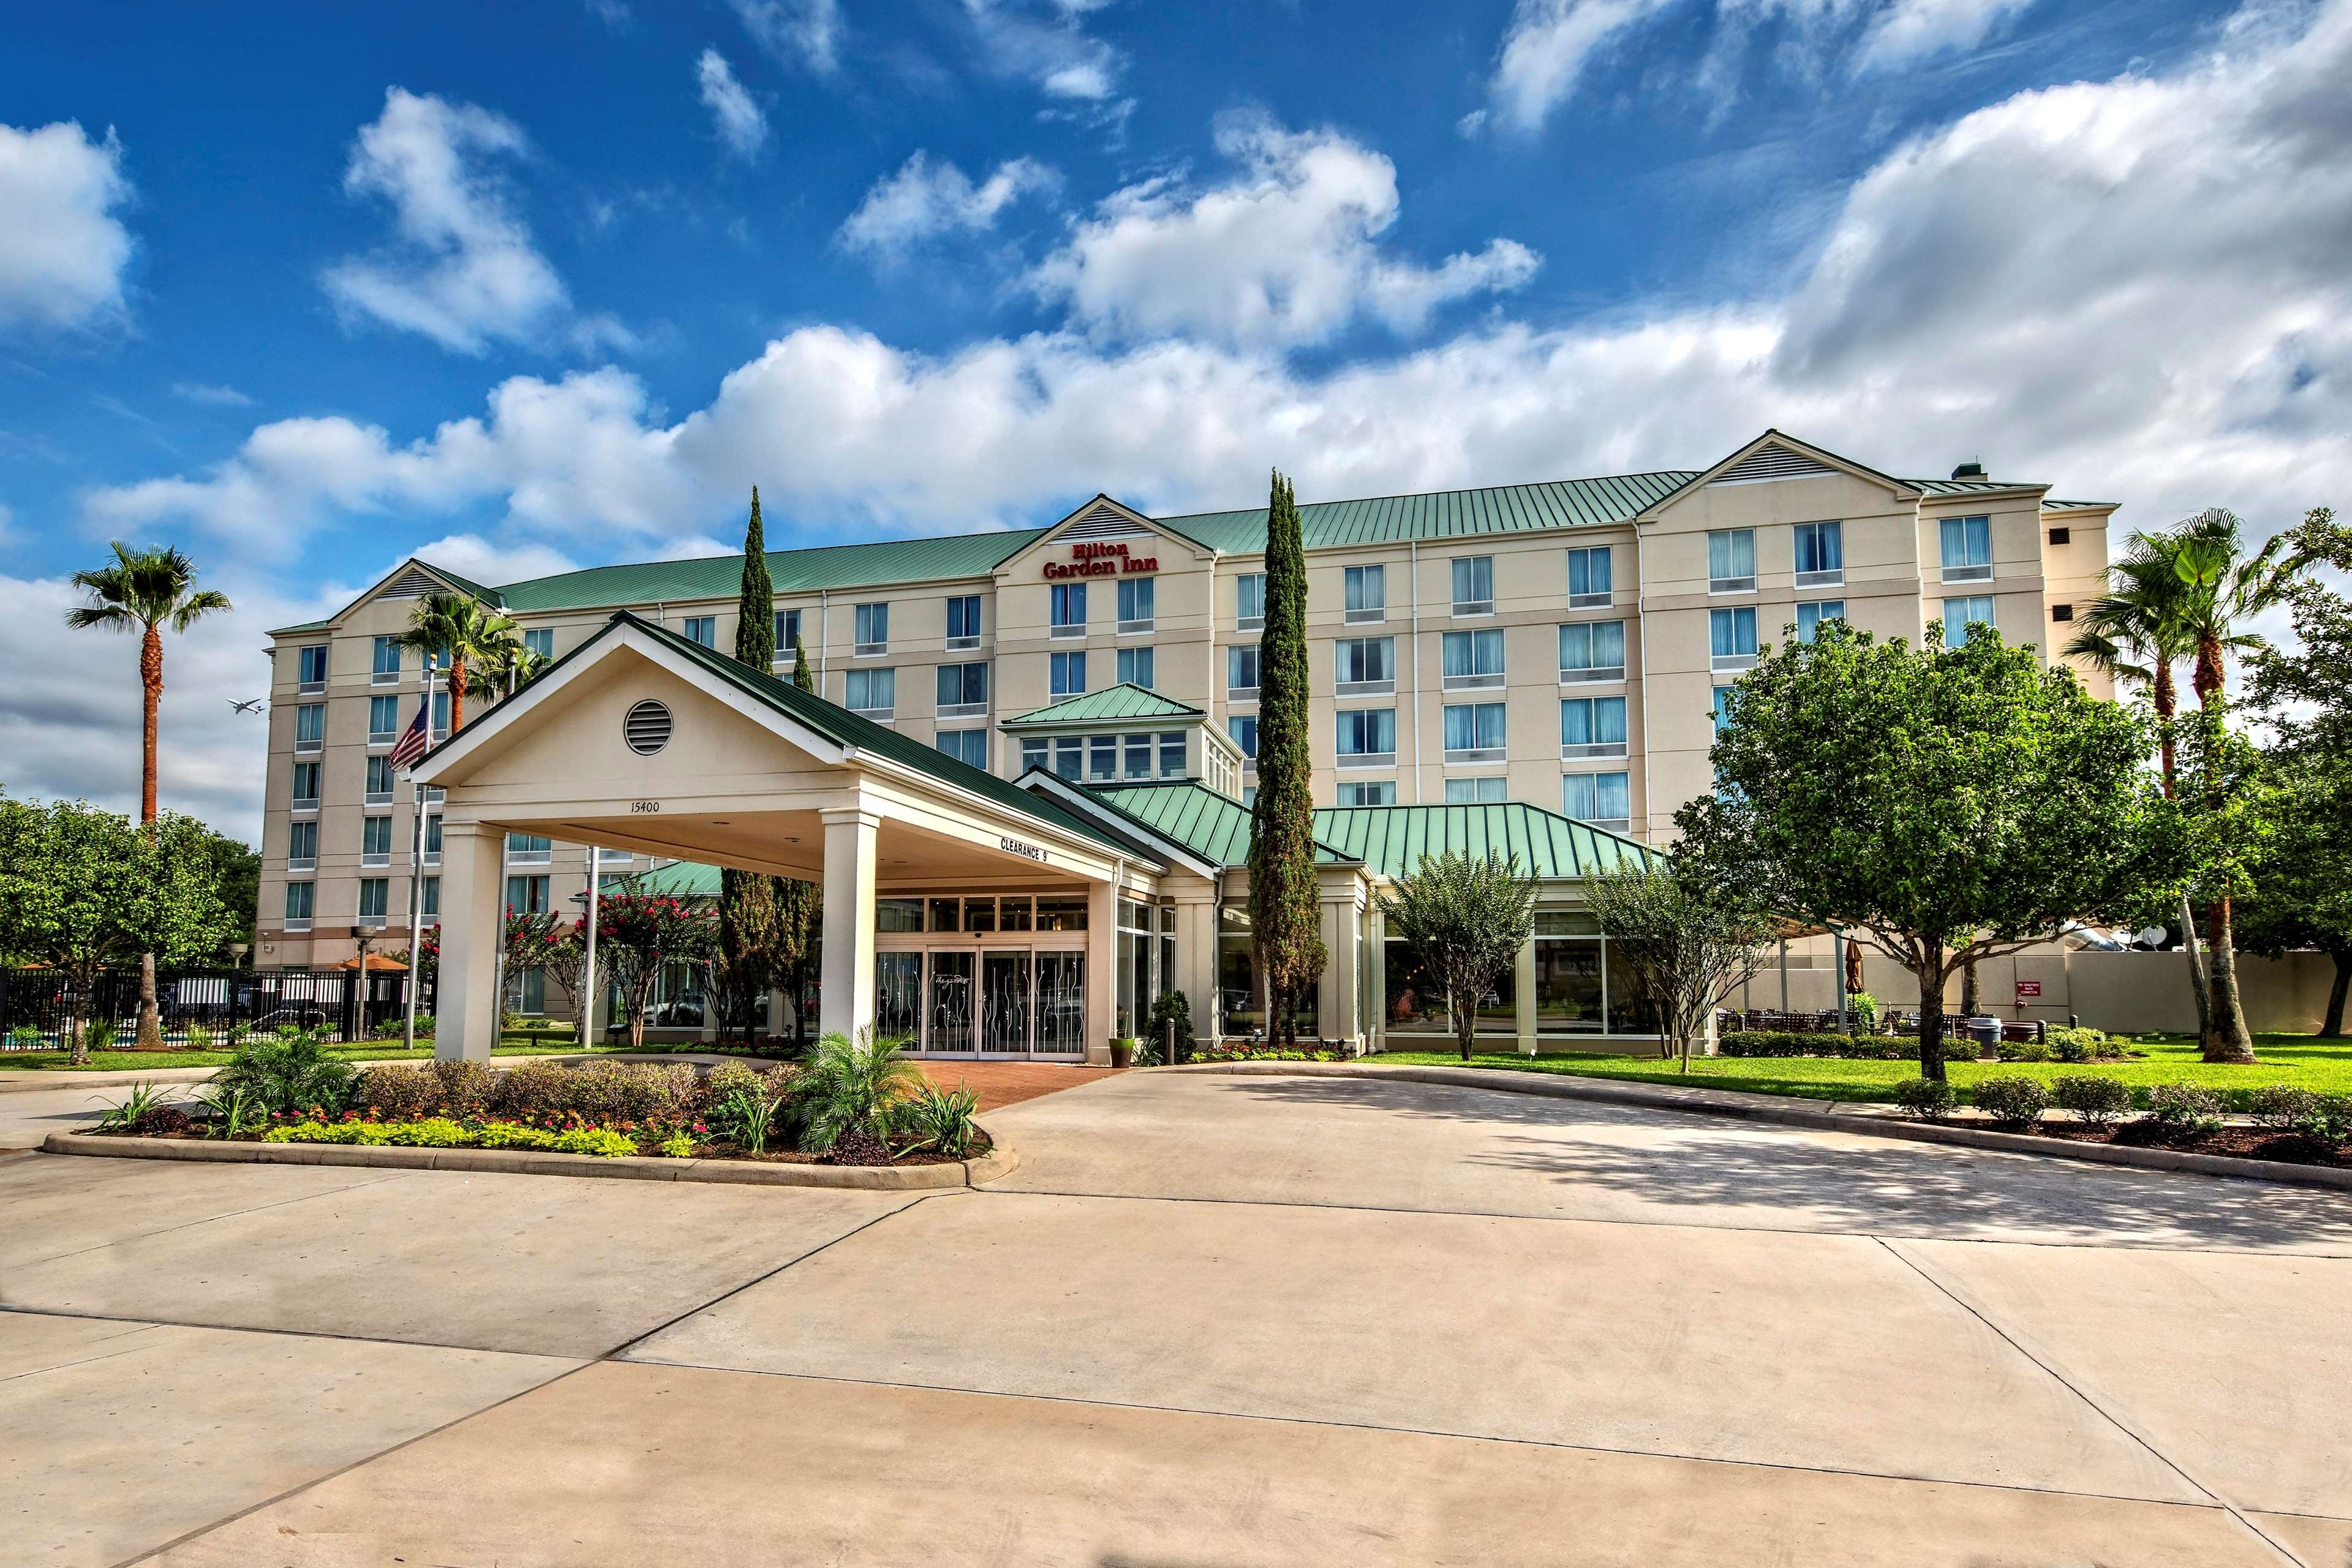 Hilton Garden Inn Houston/Bush Intercontinental Airport image 25